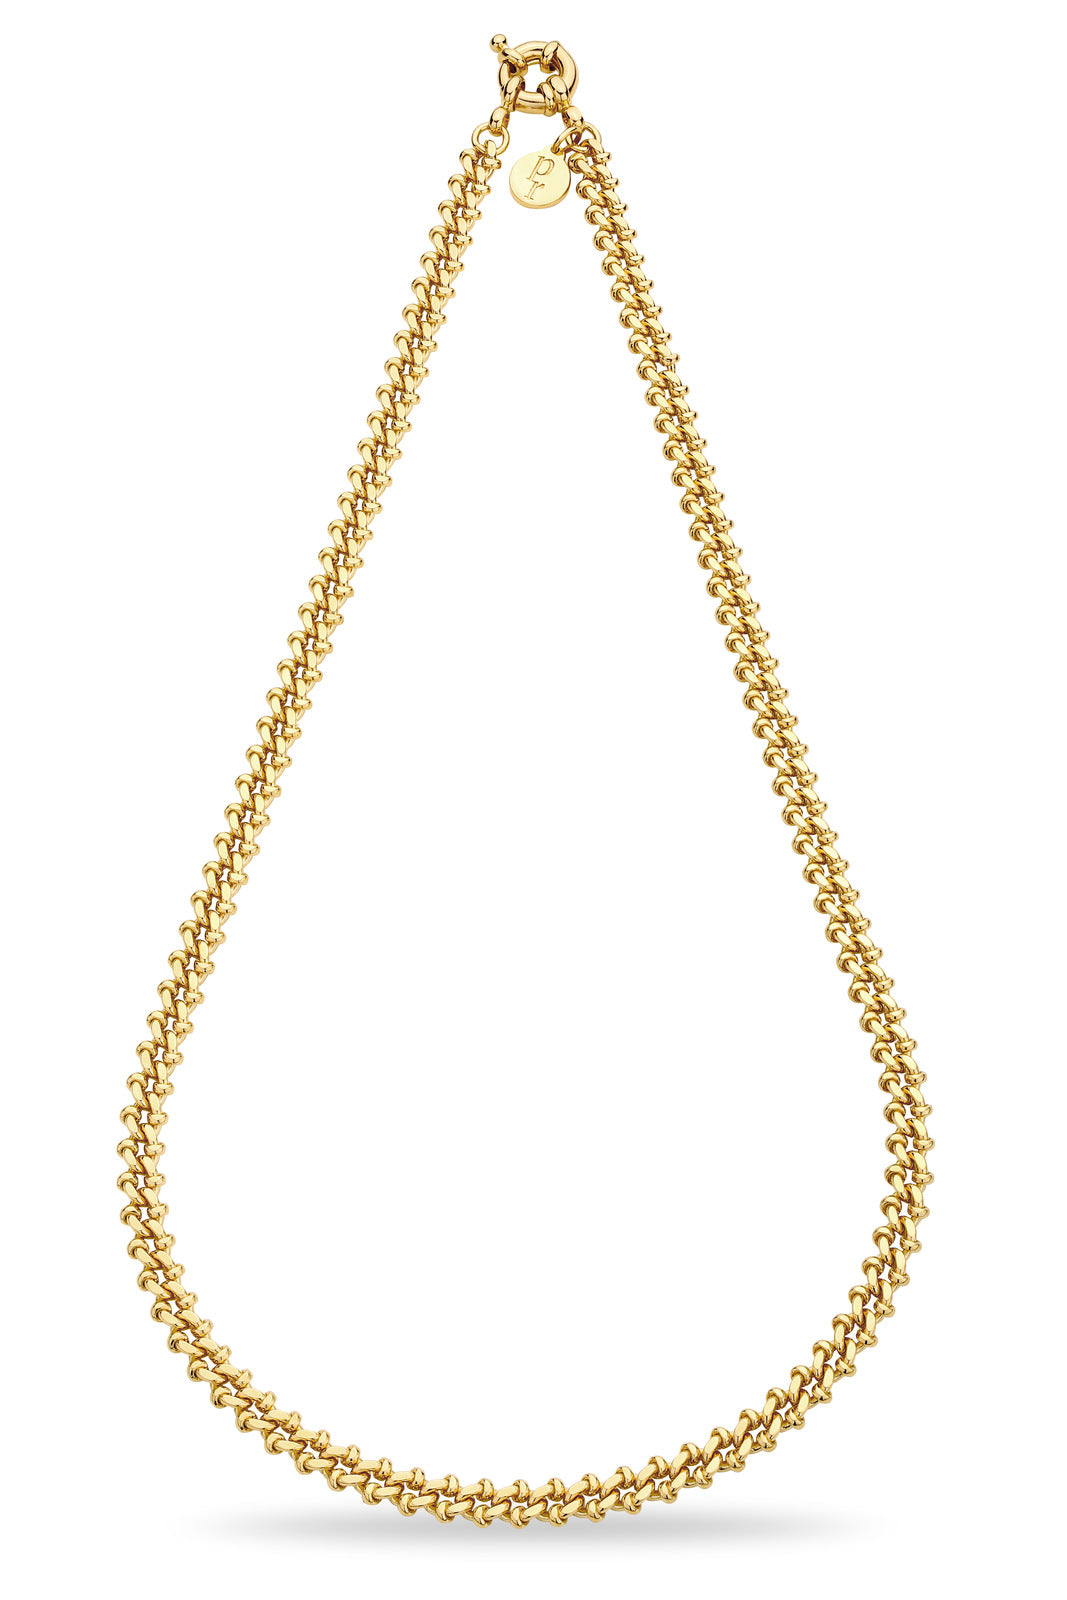 PATTY ROSE CHAIN No.2 NECKLACE